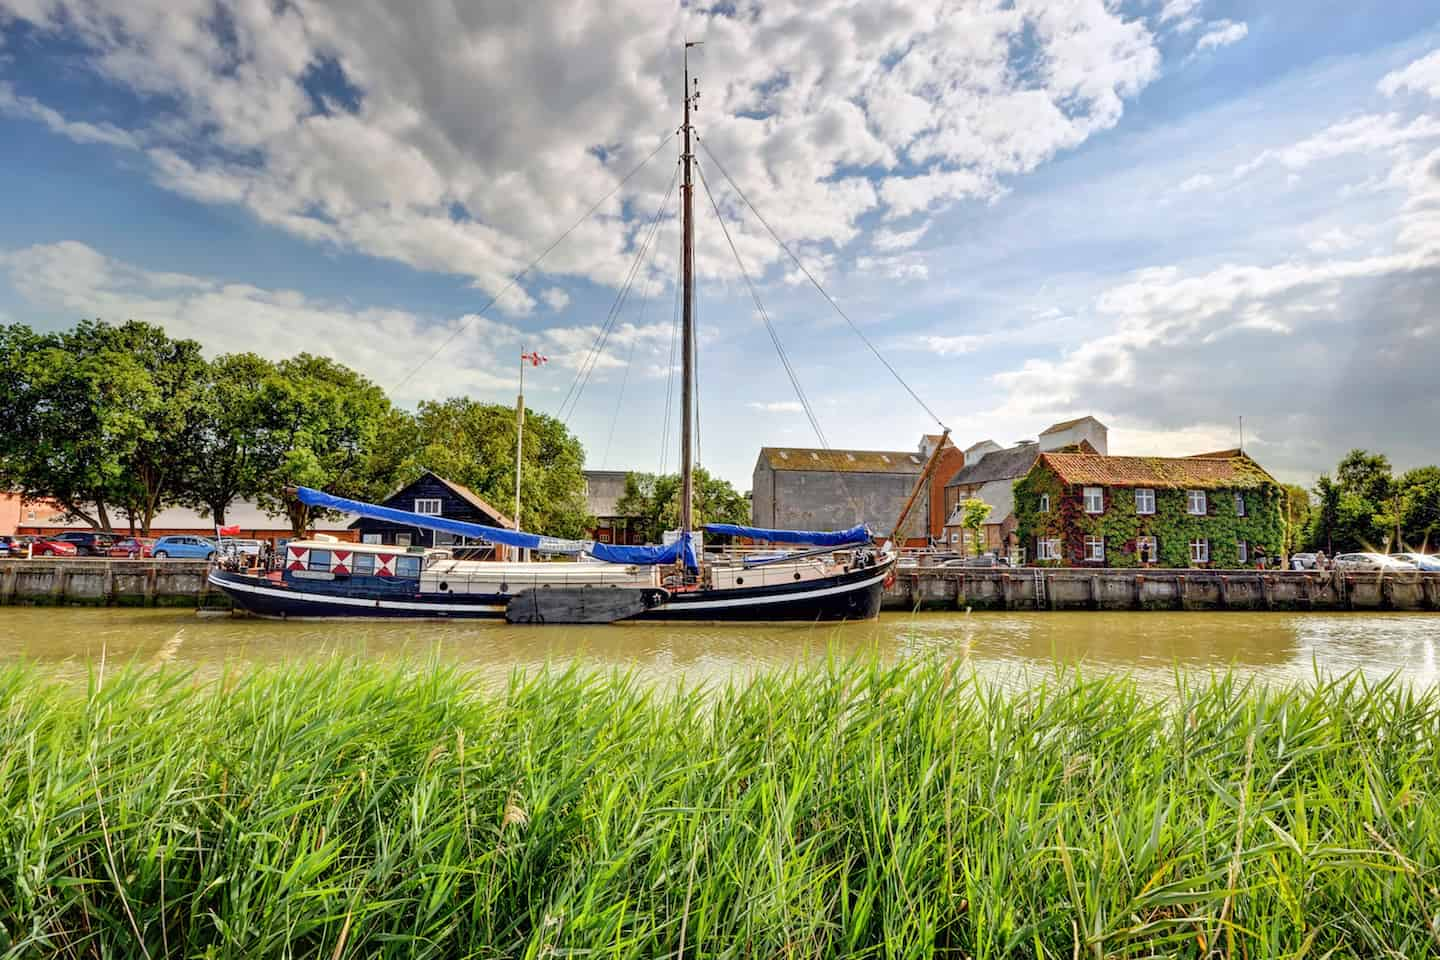 Dog-Friendly Travel Awards 2018 - Woodfarm Barges 2